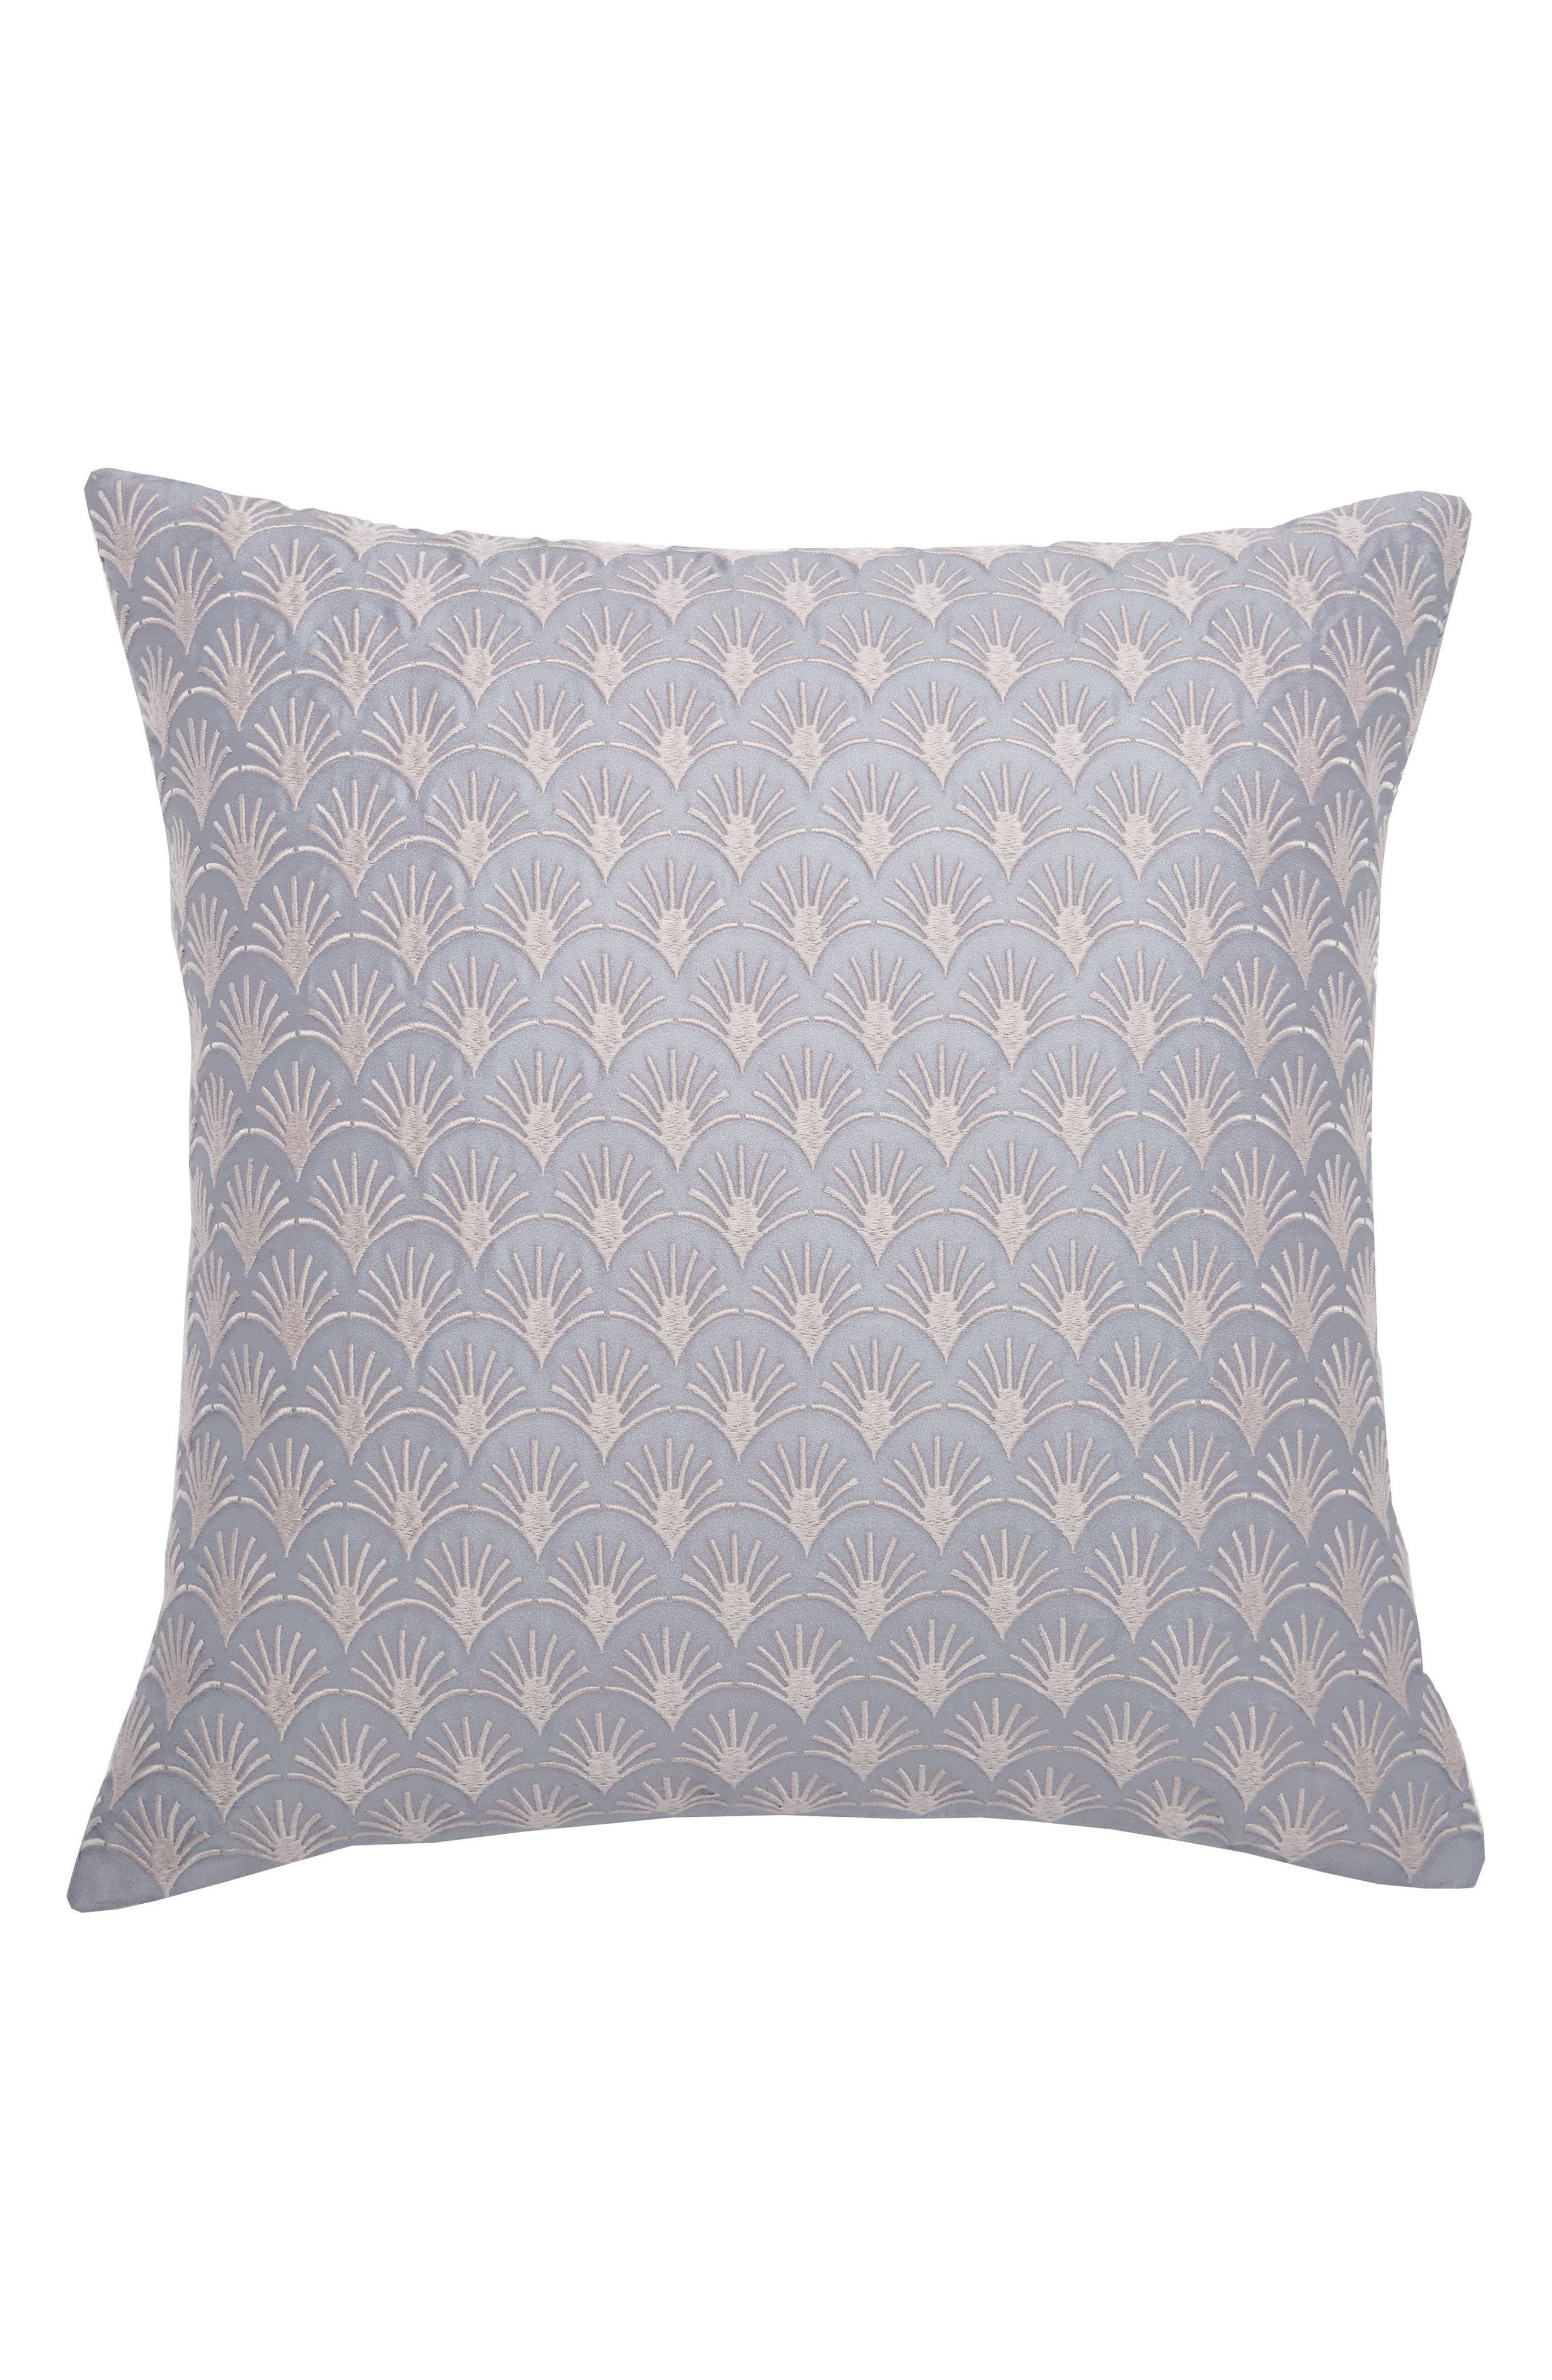 Fan Embroidered Pillow,                         Main,                         color, 020